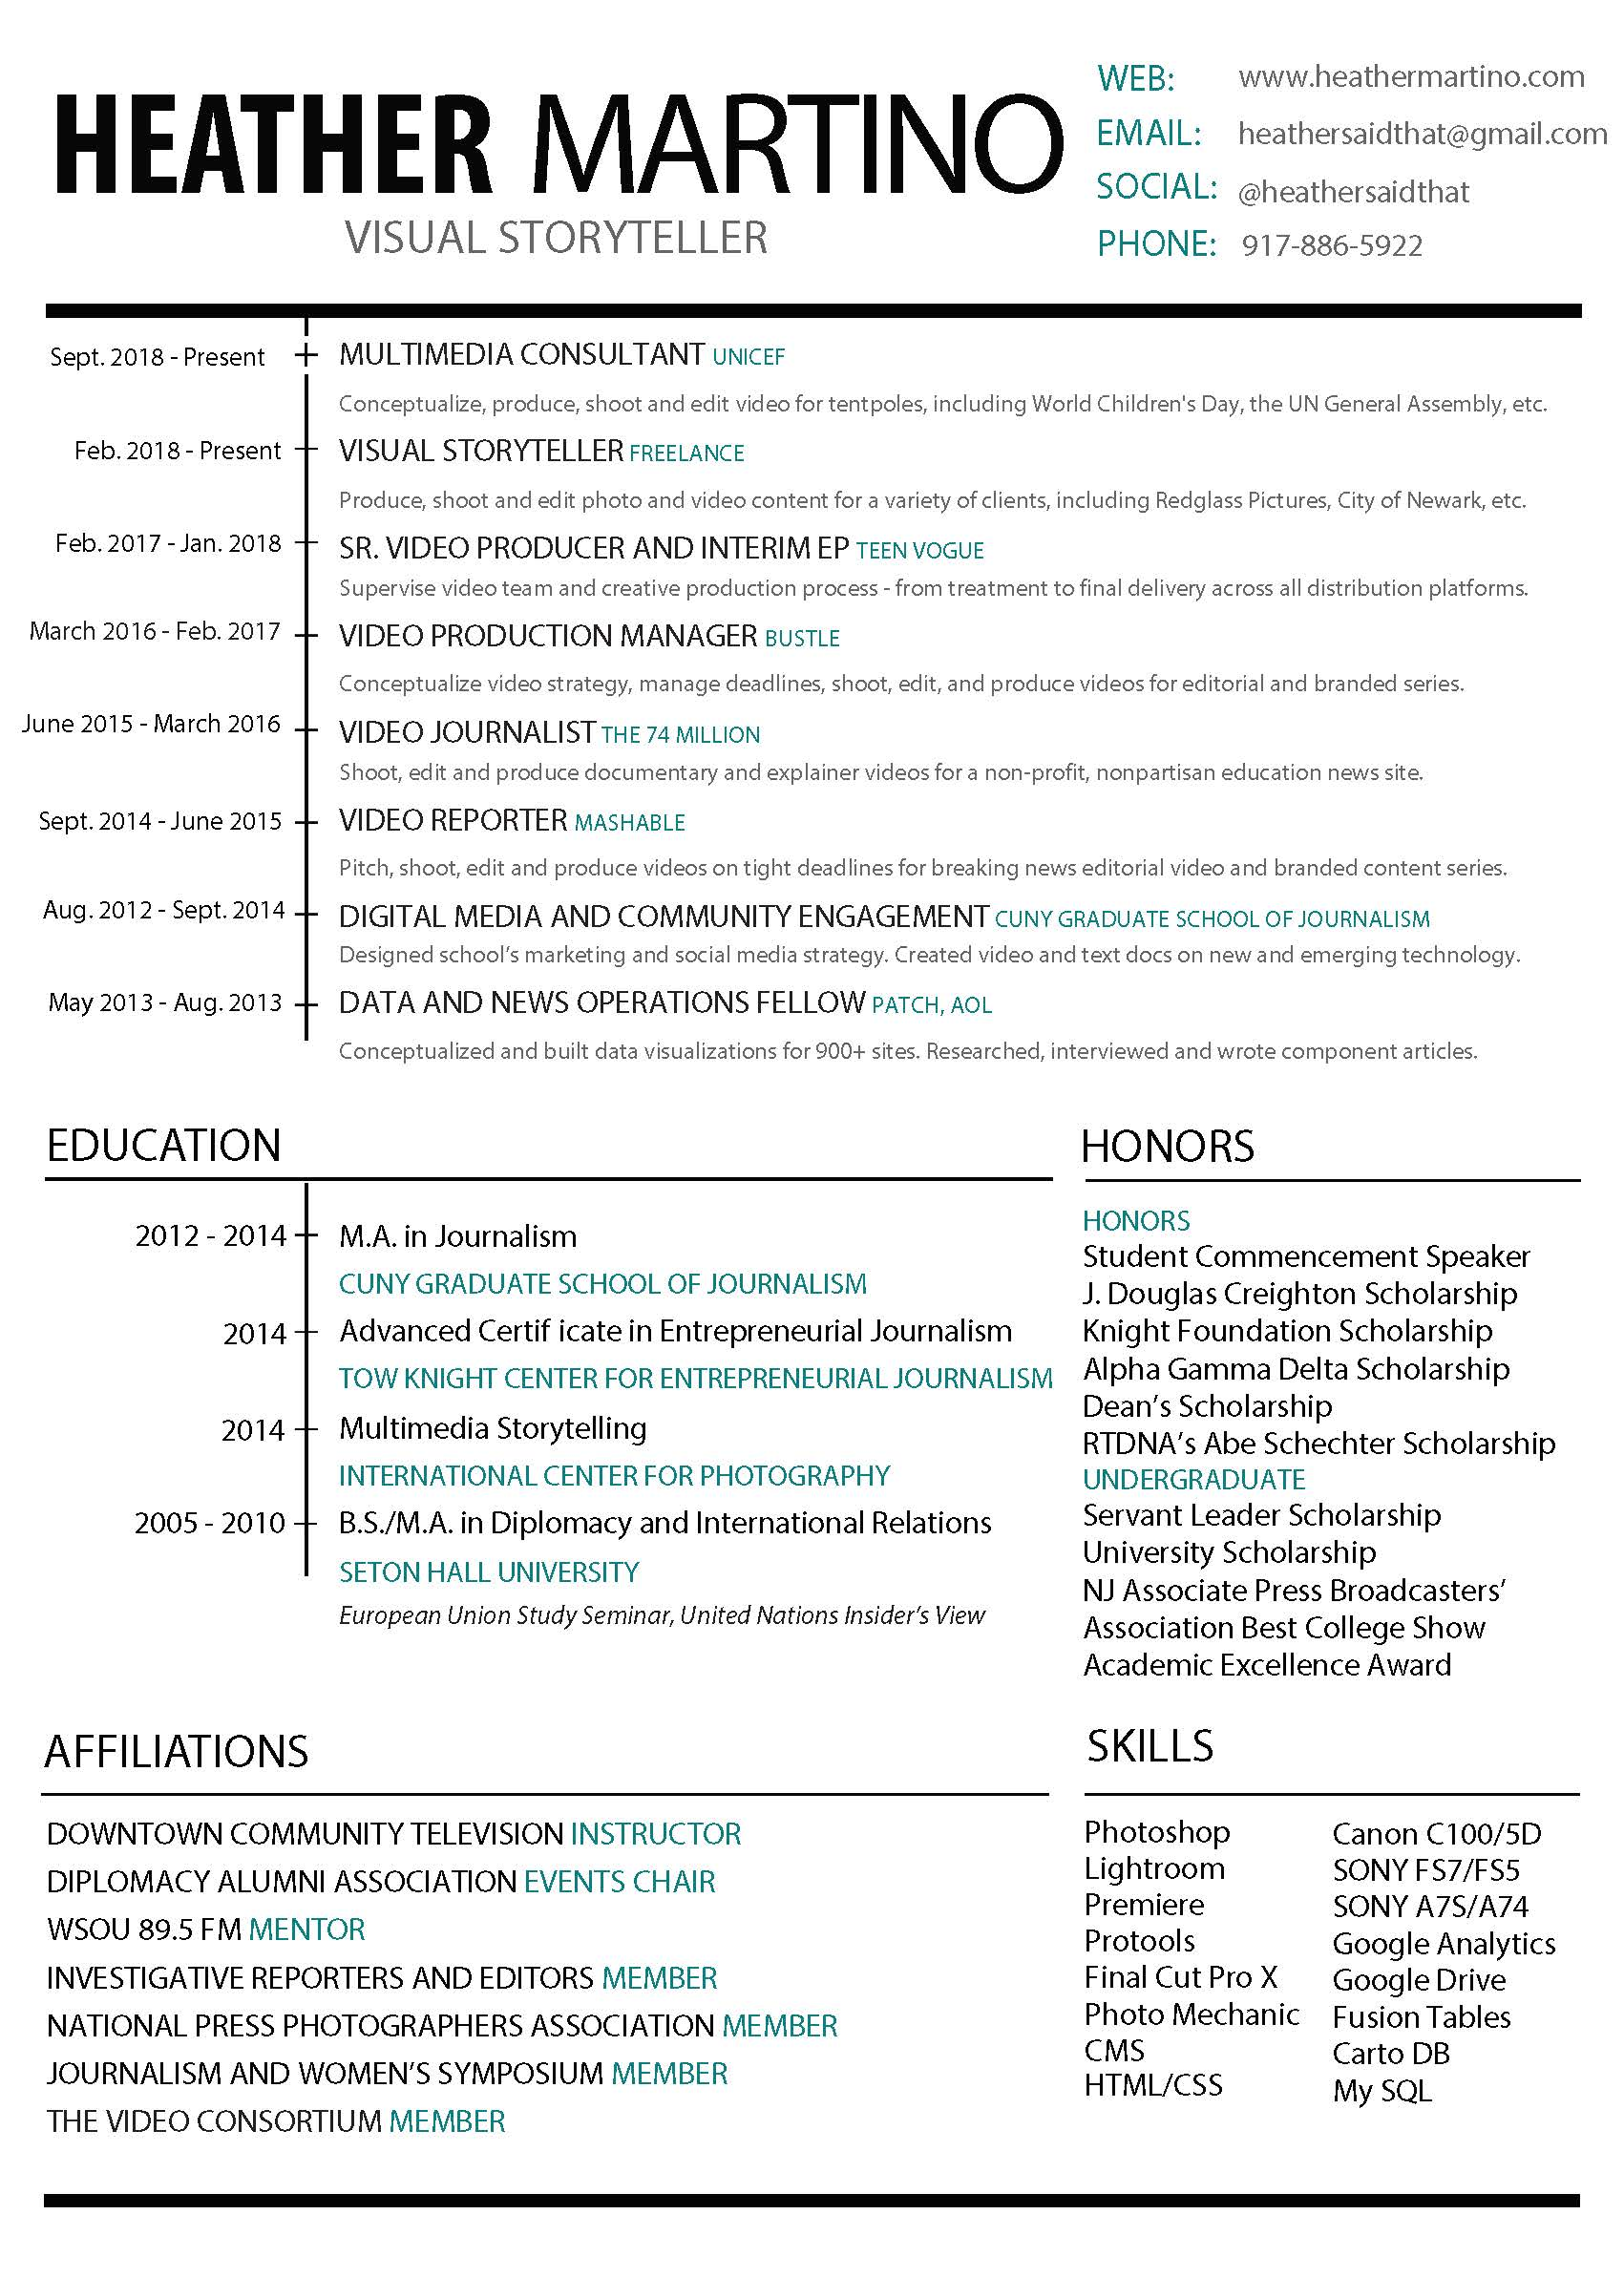 HeatherMartino_Resume_2019.jpg